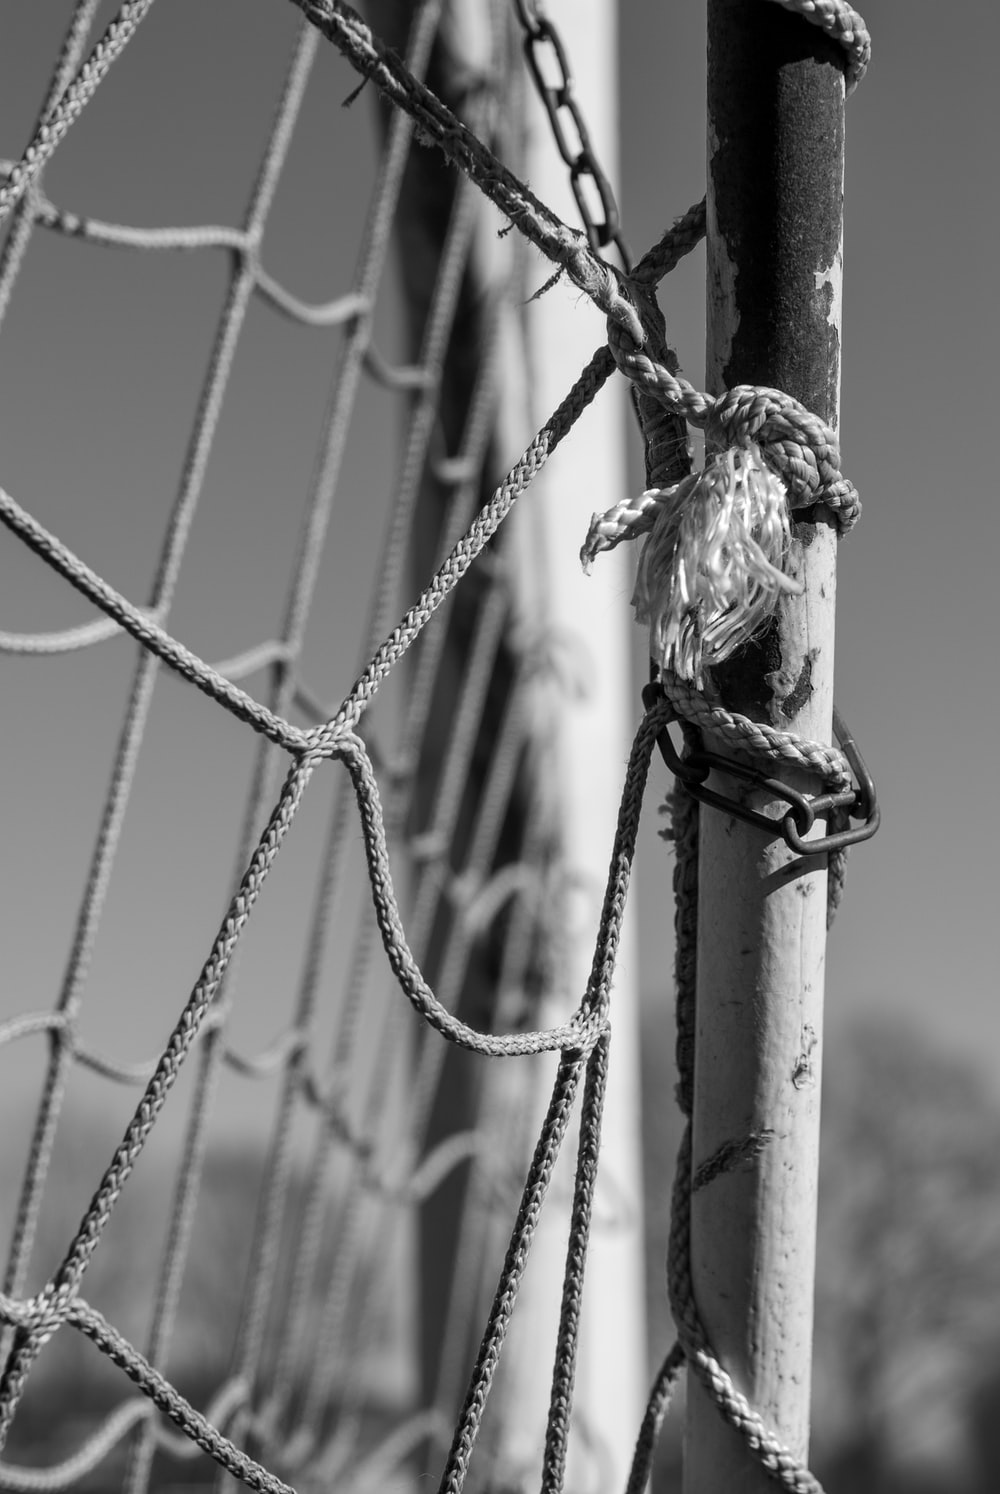 grayscale photo of a rope tied on a wire